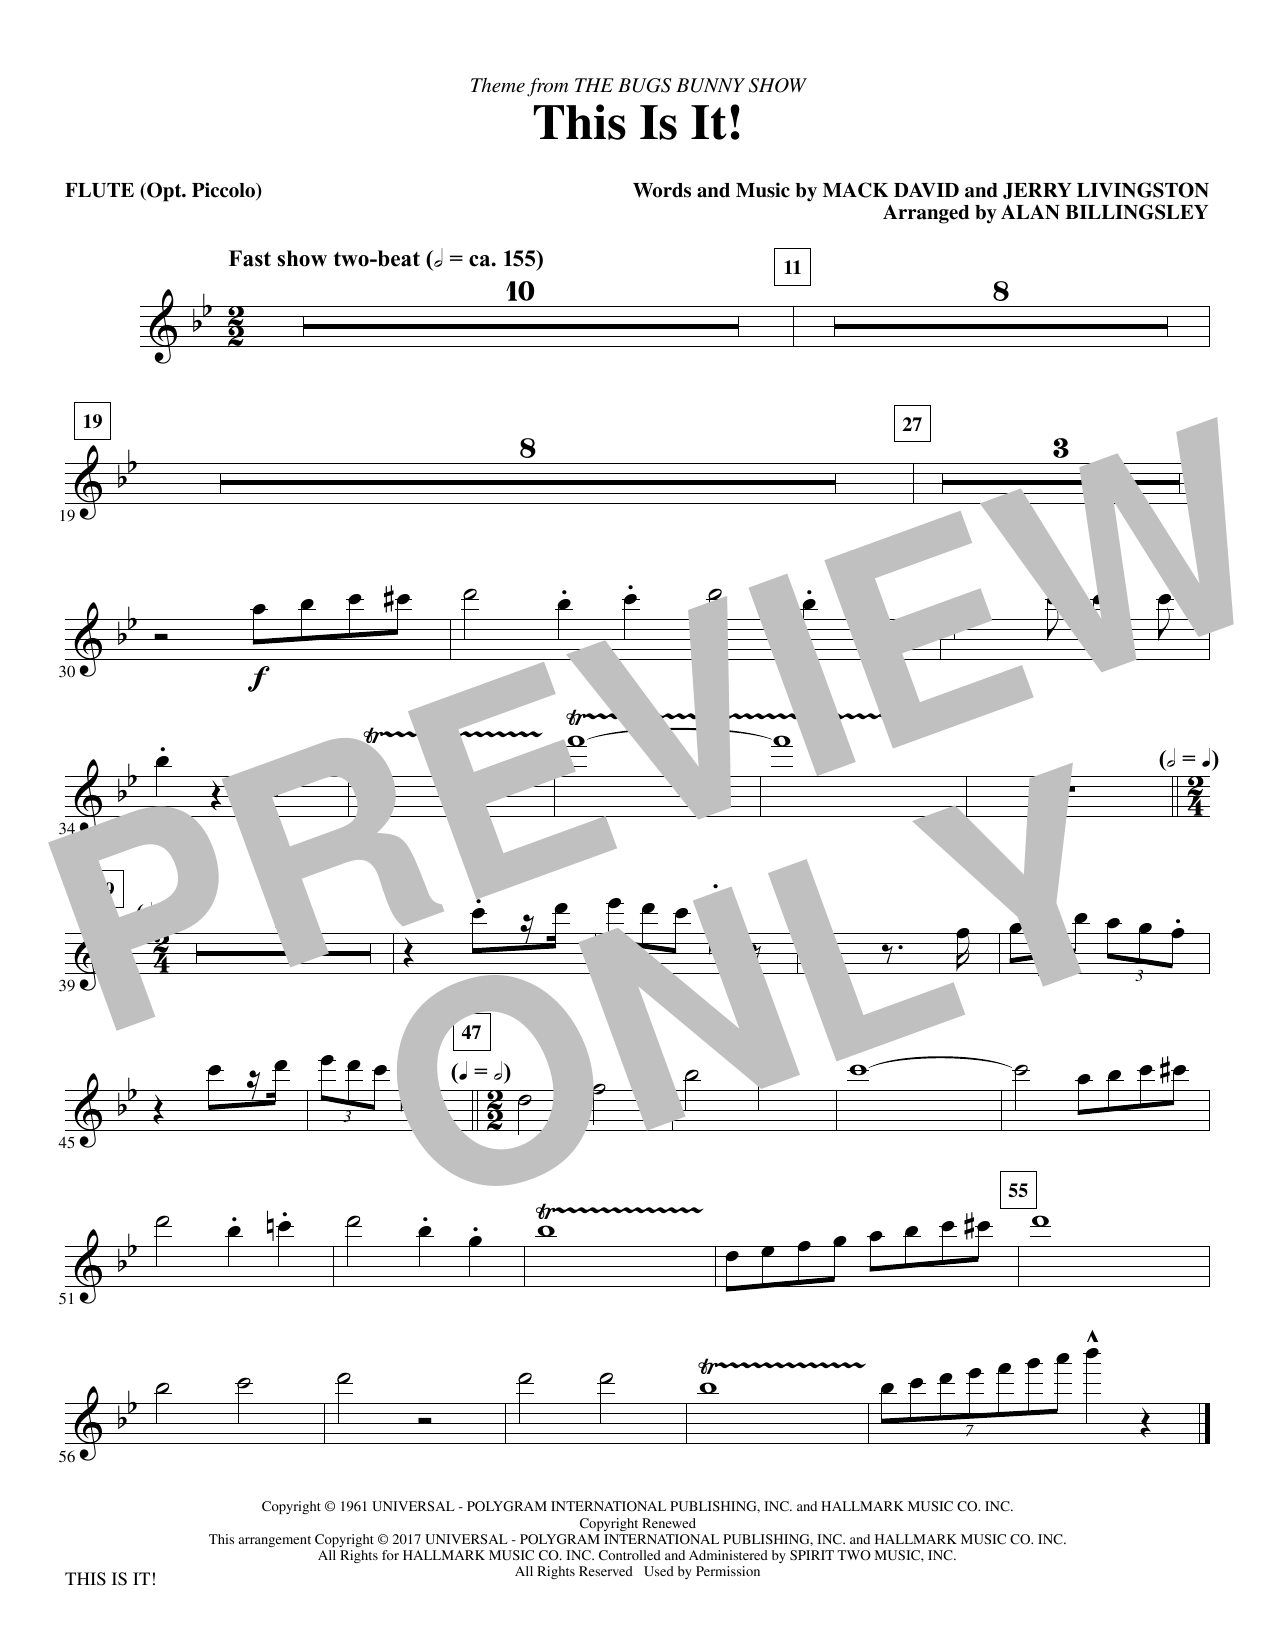 Mack David & Jerry Livingston This Is It! (arr. Alan Billingsley) - Flute sheet music notes and chords. Download Printable PDF.